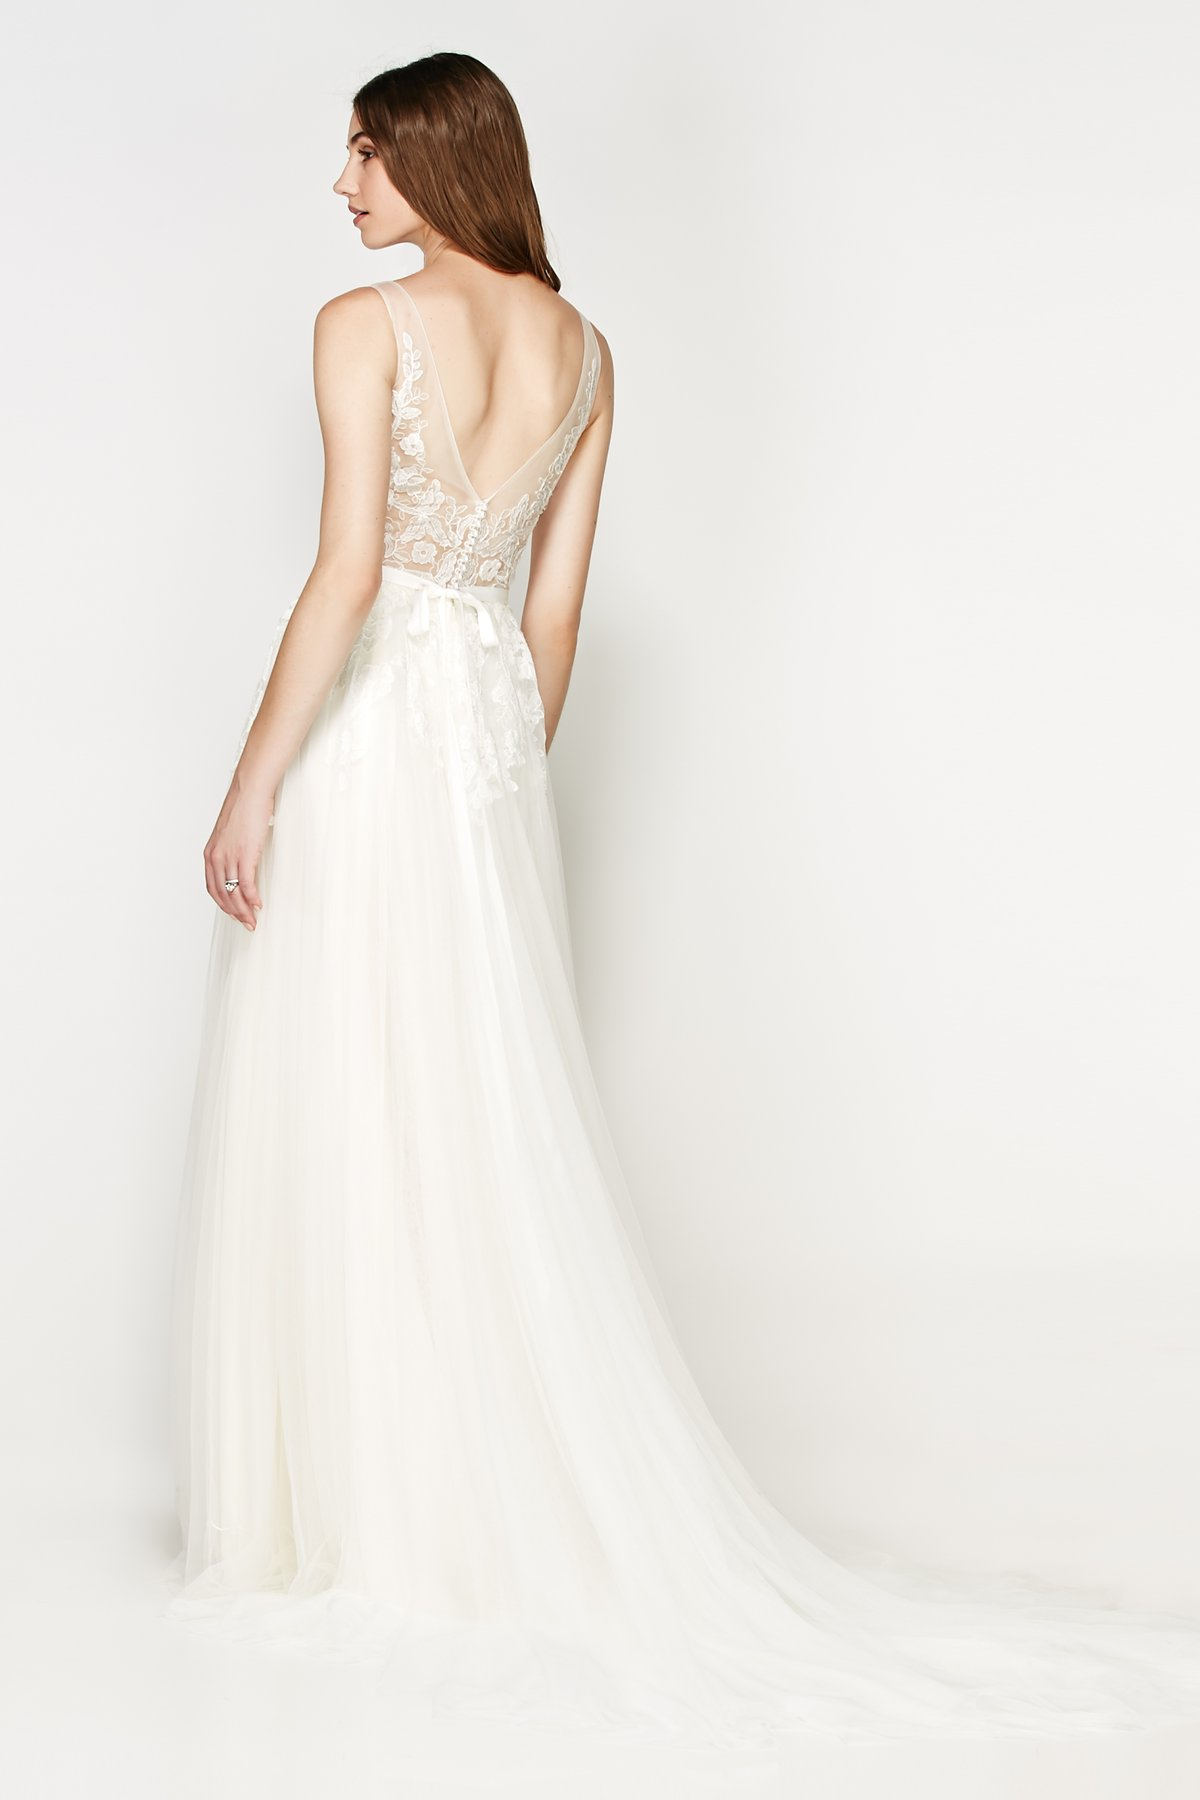 Bali 56766 | Willowby Brides | Willowby